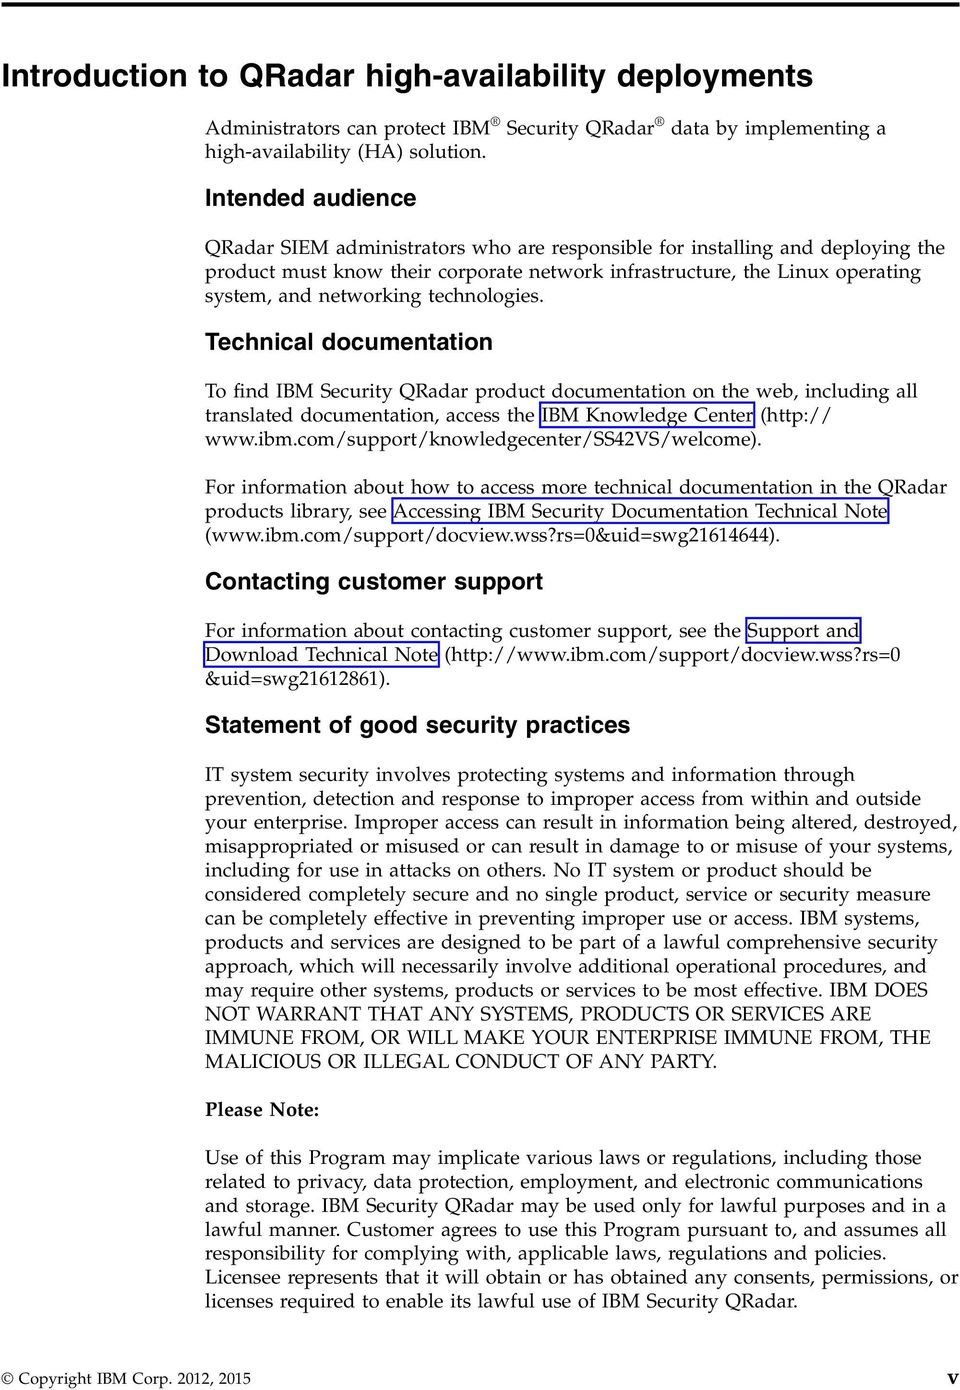 technologies. Technical documentation To find IBM Security QRadar product documentation on the web, including all translated documentation, access the IBM Knowledge Center (http:// www.ibm.